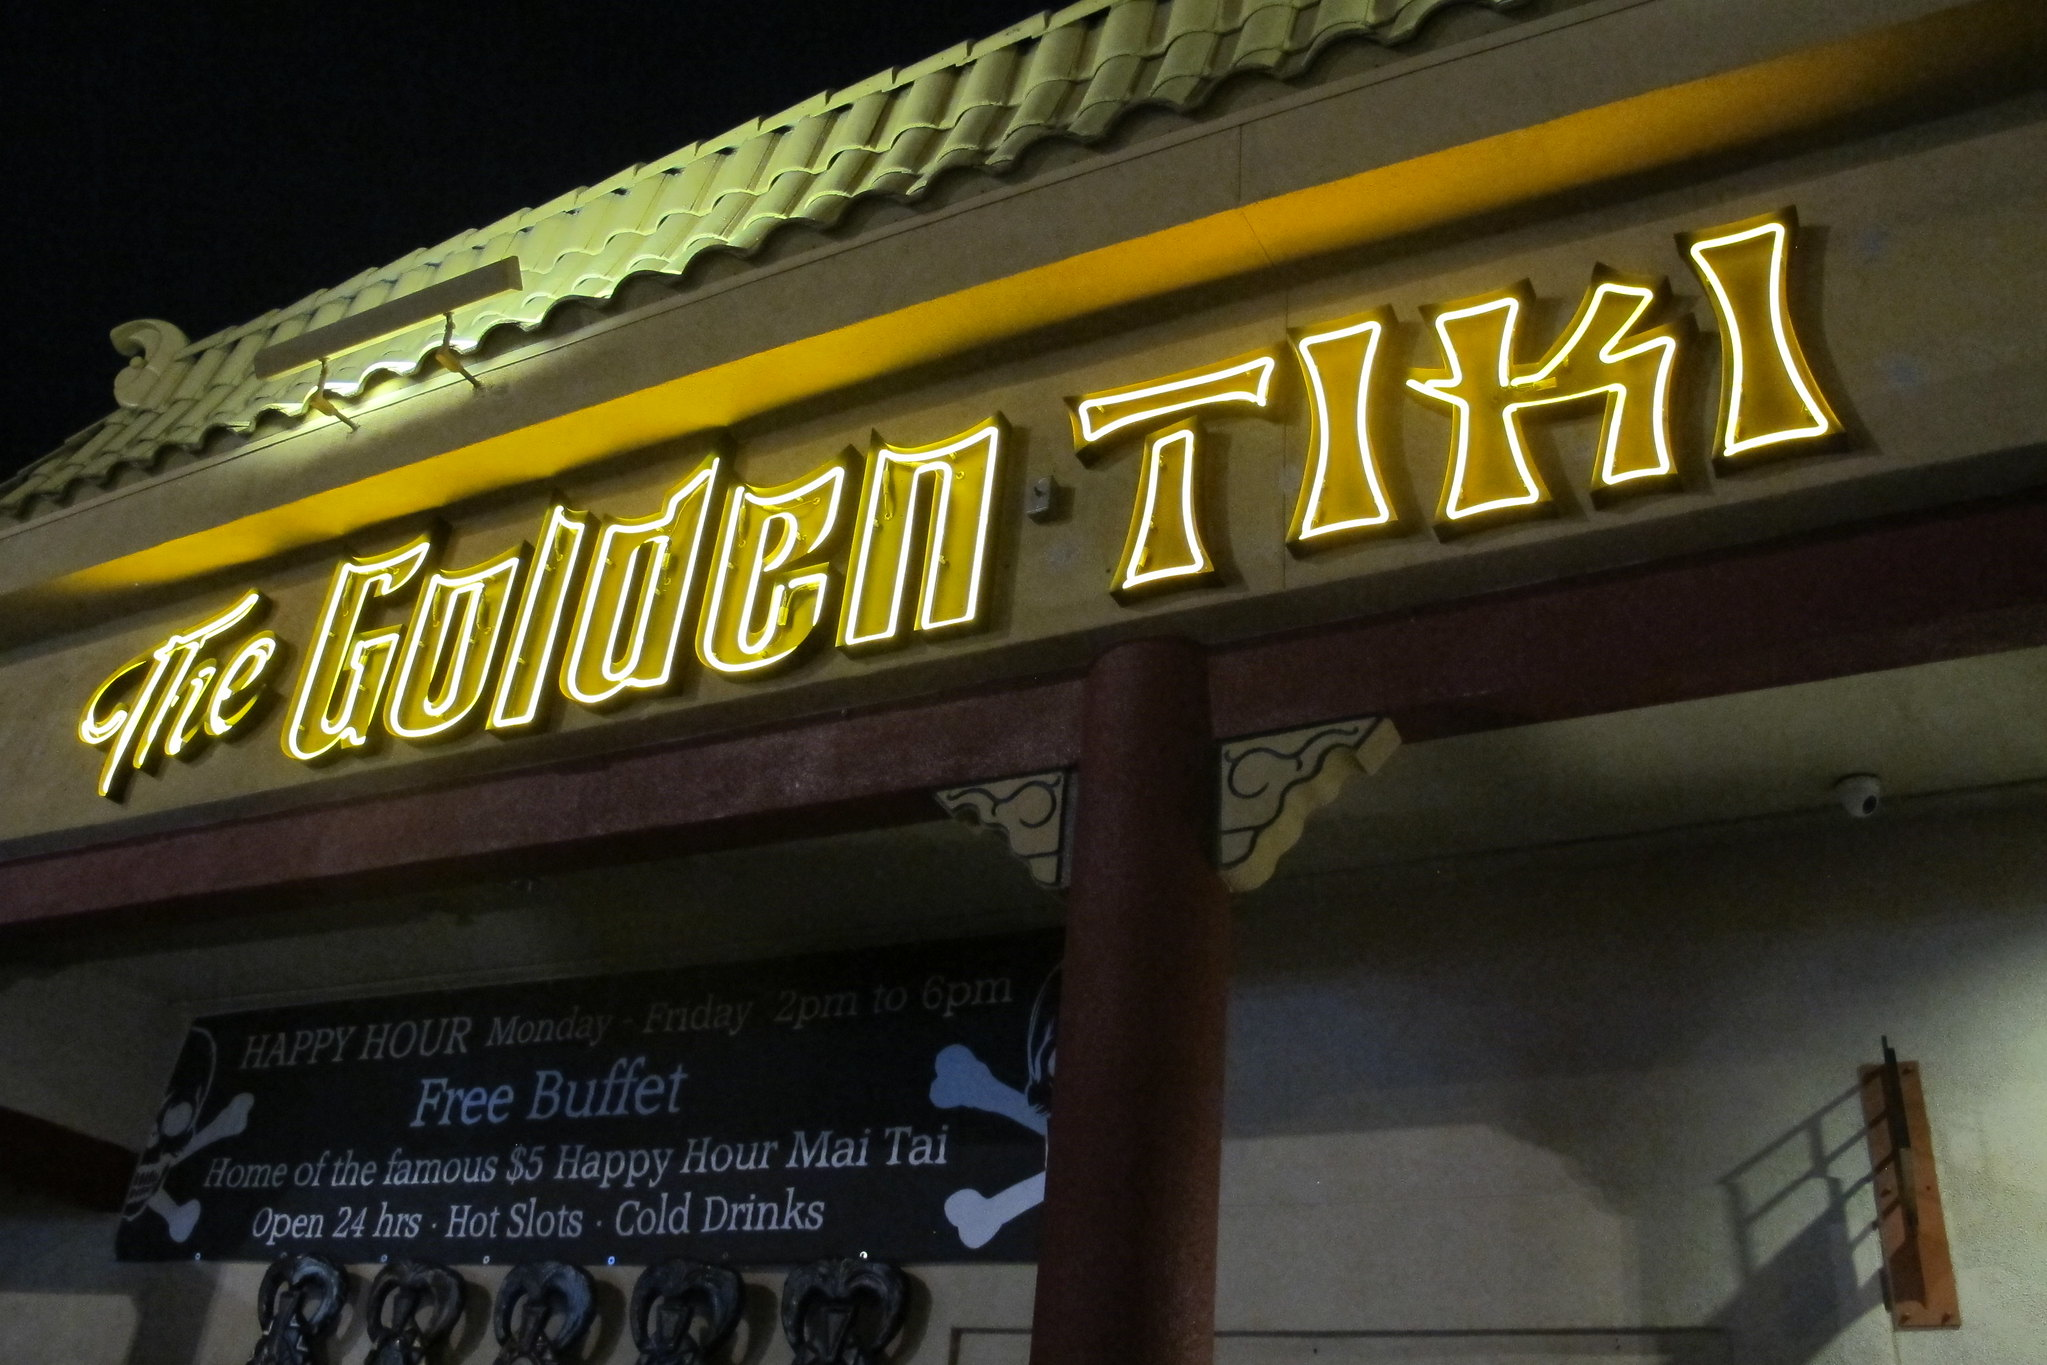 The Golden Tiki sign